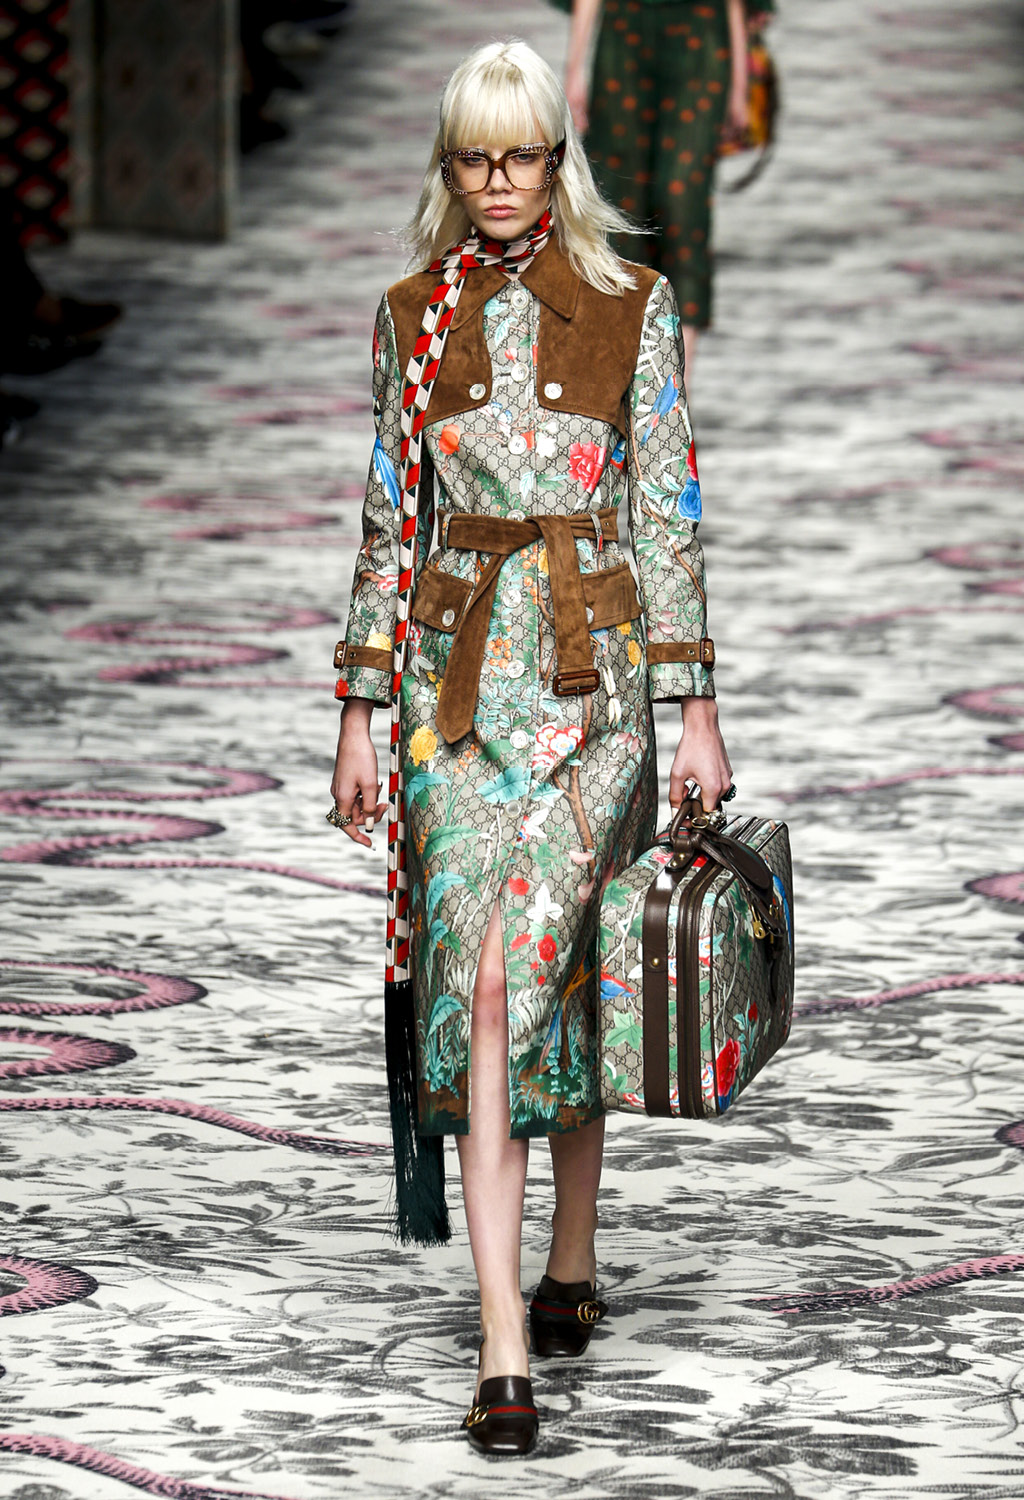 Gucci show as a part of Milan Fashion Week Spring/Summer 2016